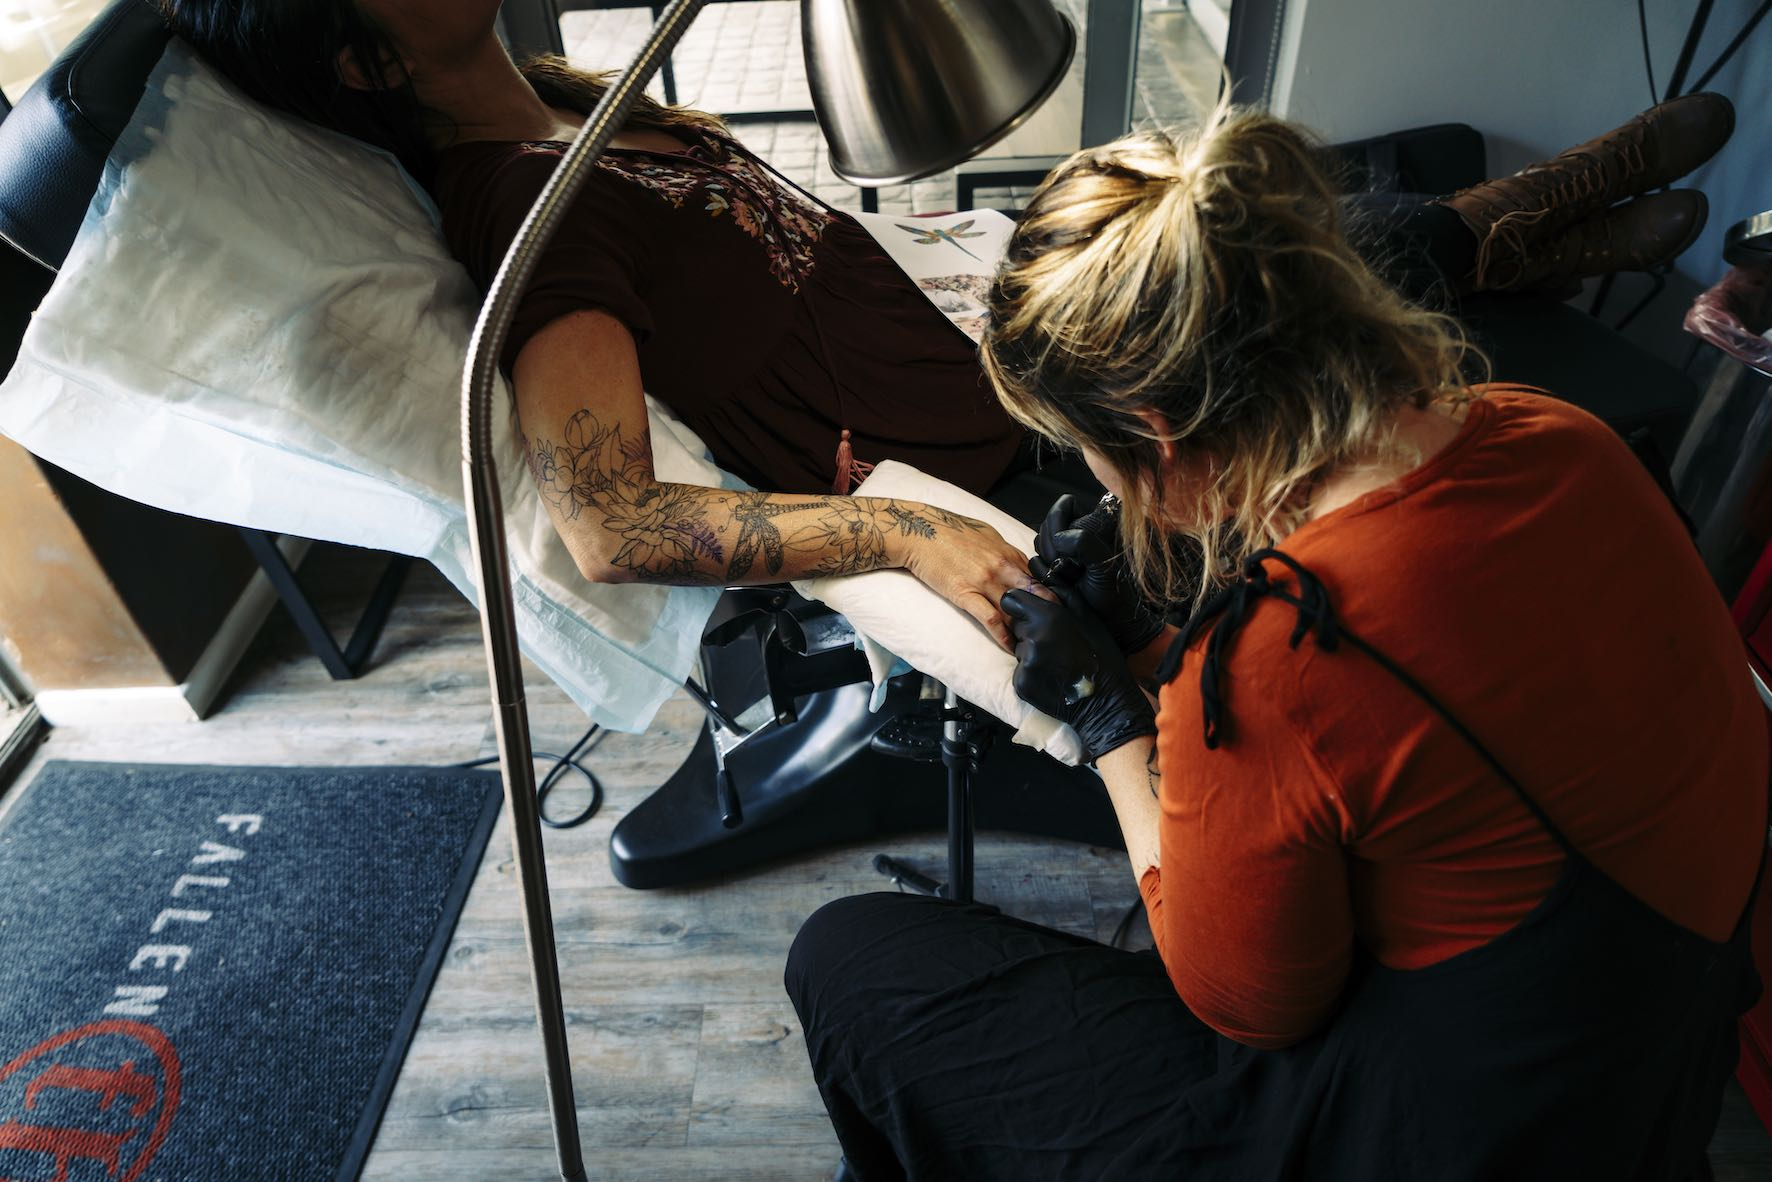 Exclusive interview with tattoo artist, Lauren Peachfish